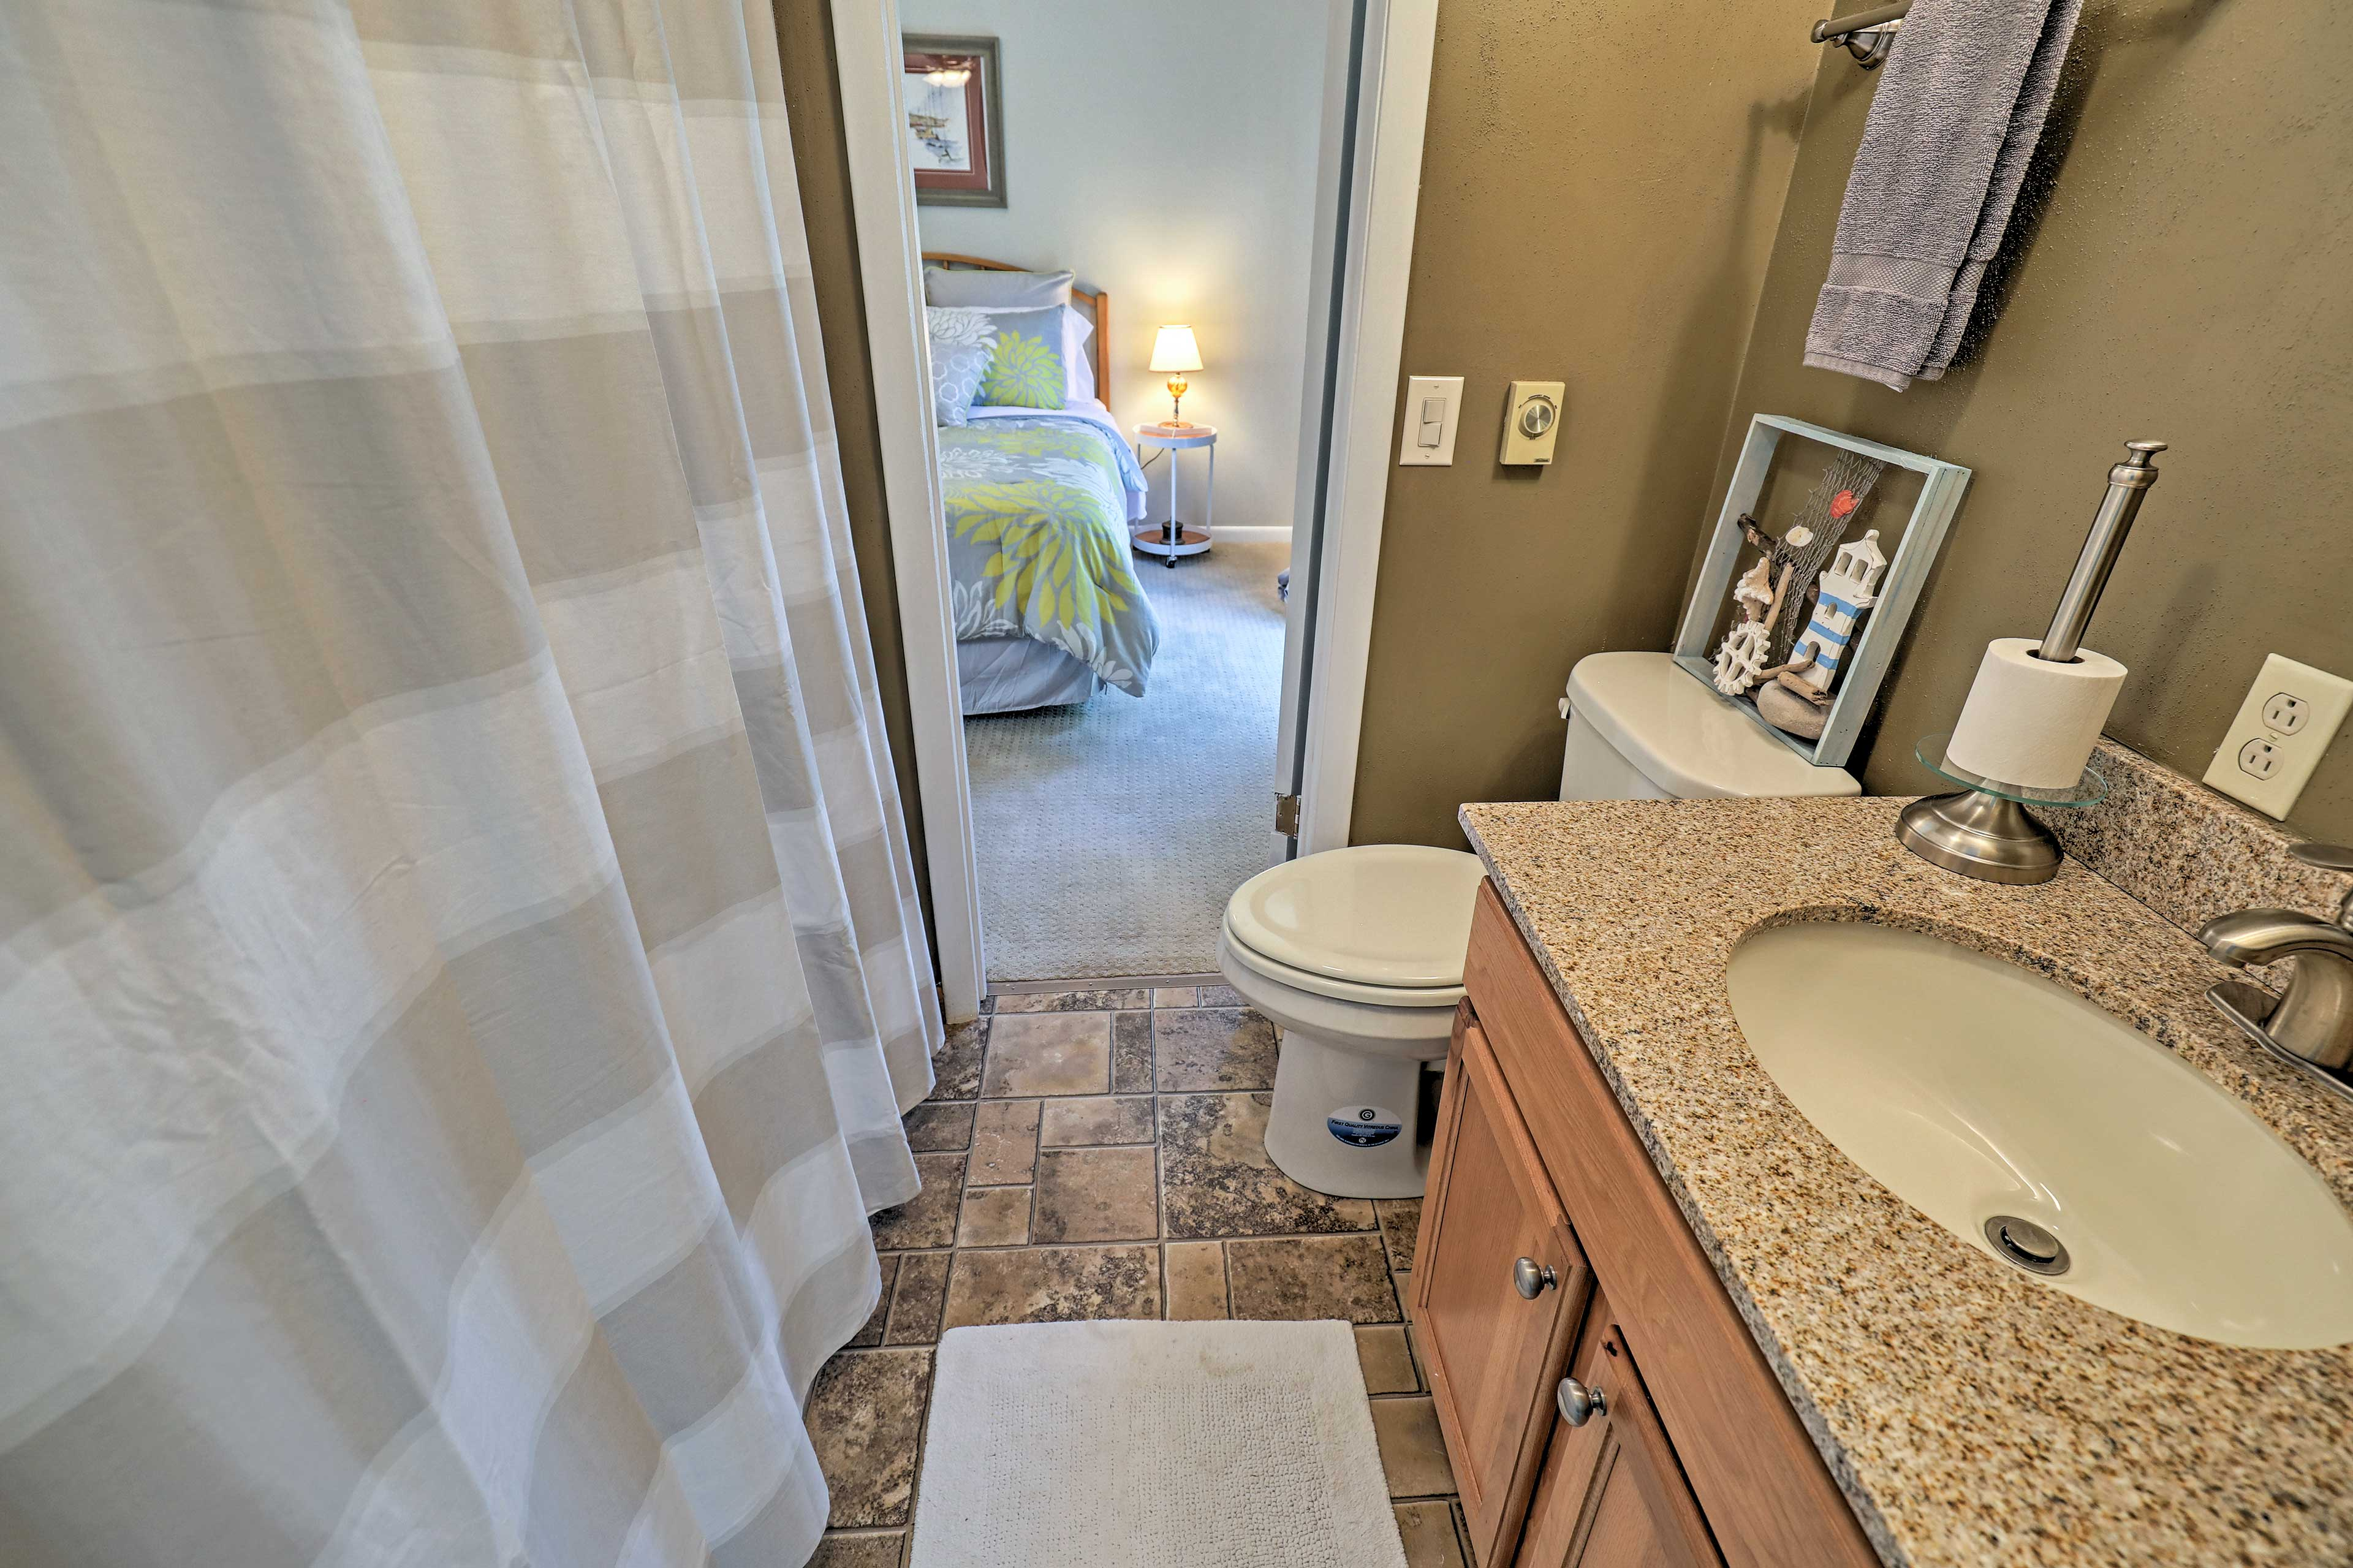 The Jack-and-Jill bathroom connects the second and third bedroom.